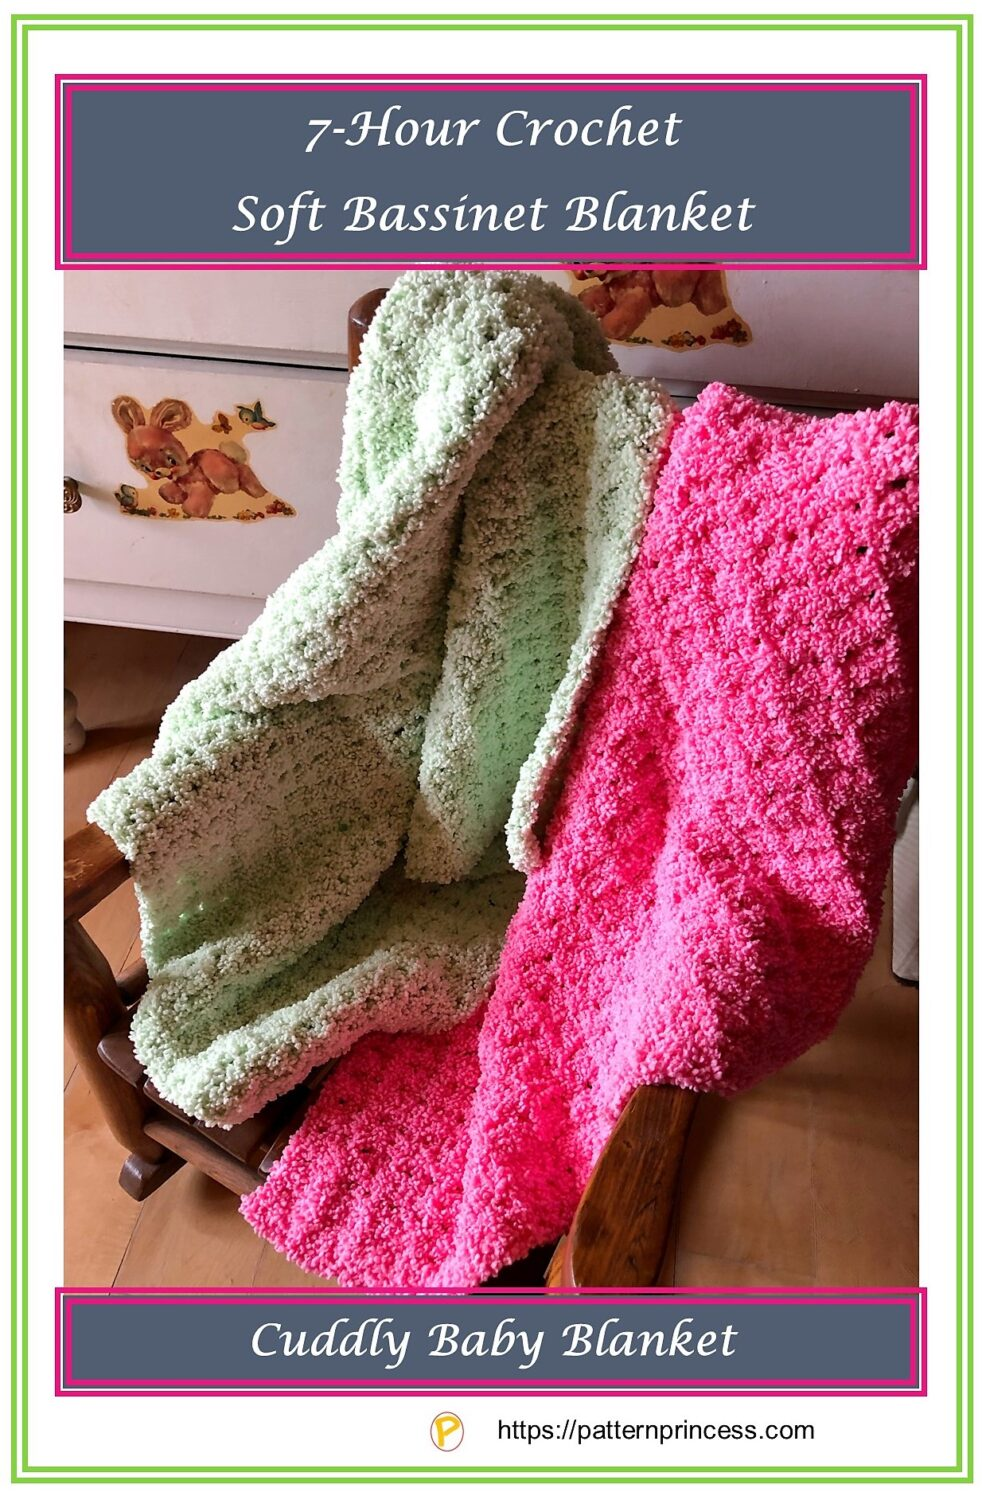 Crochet Soft Baby Blanket